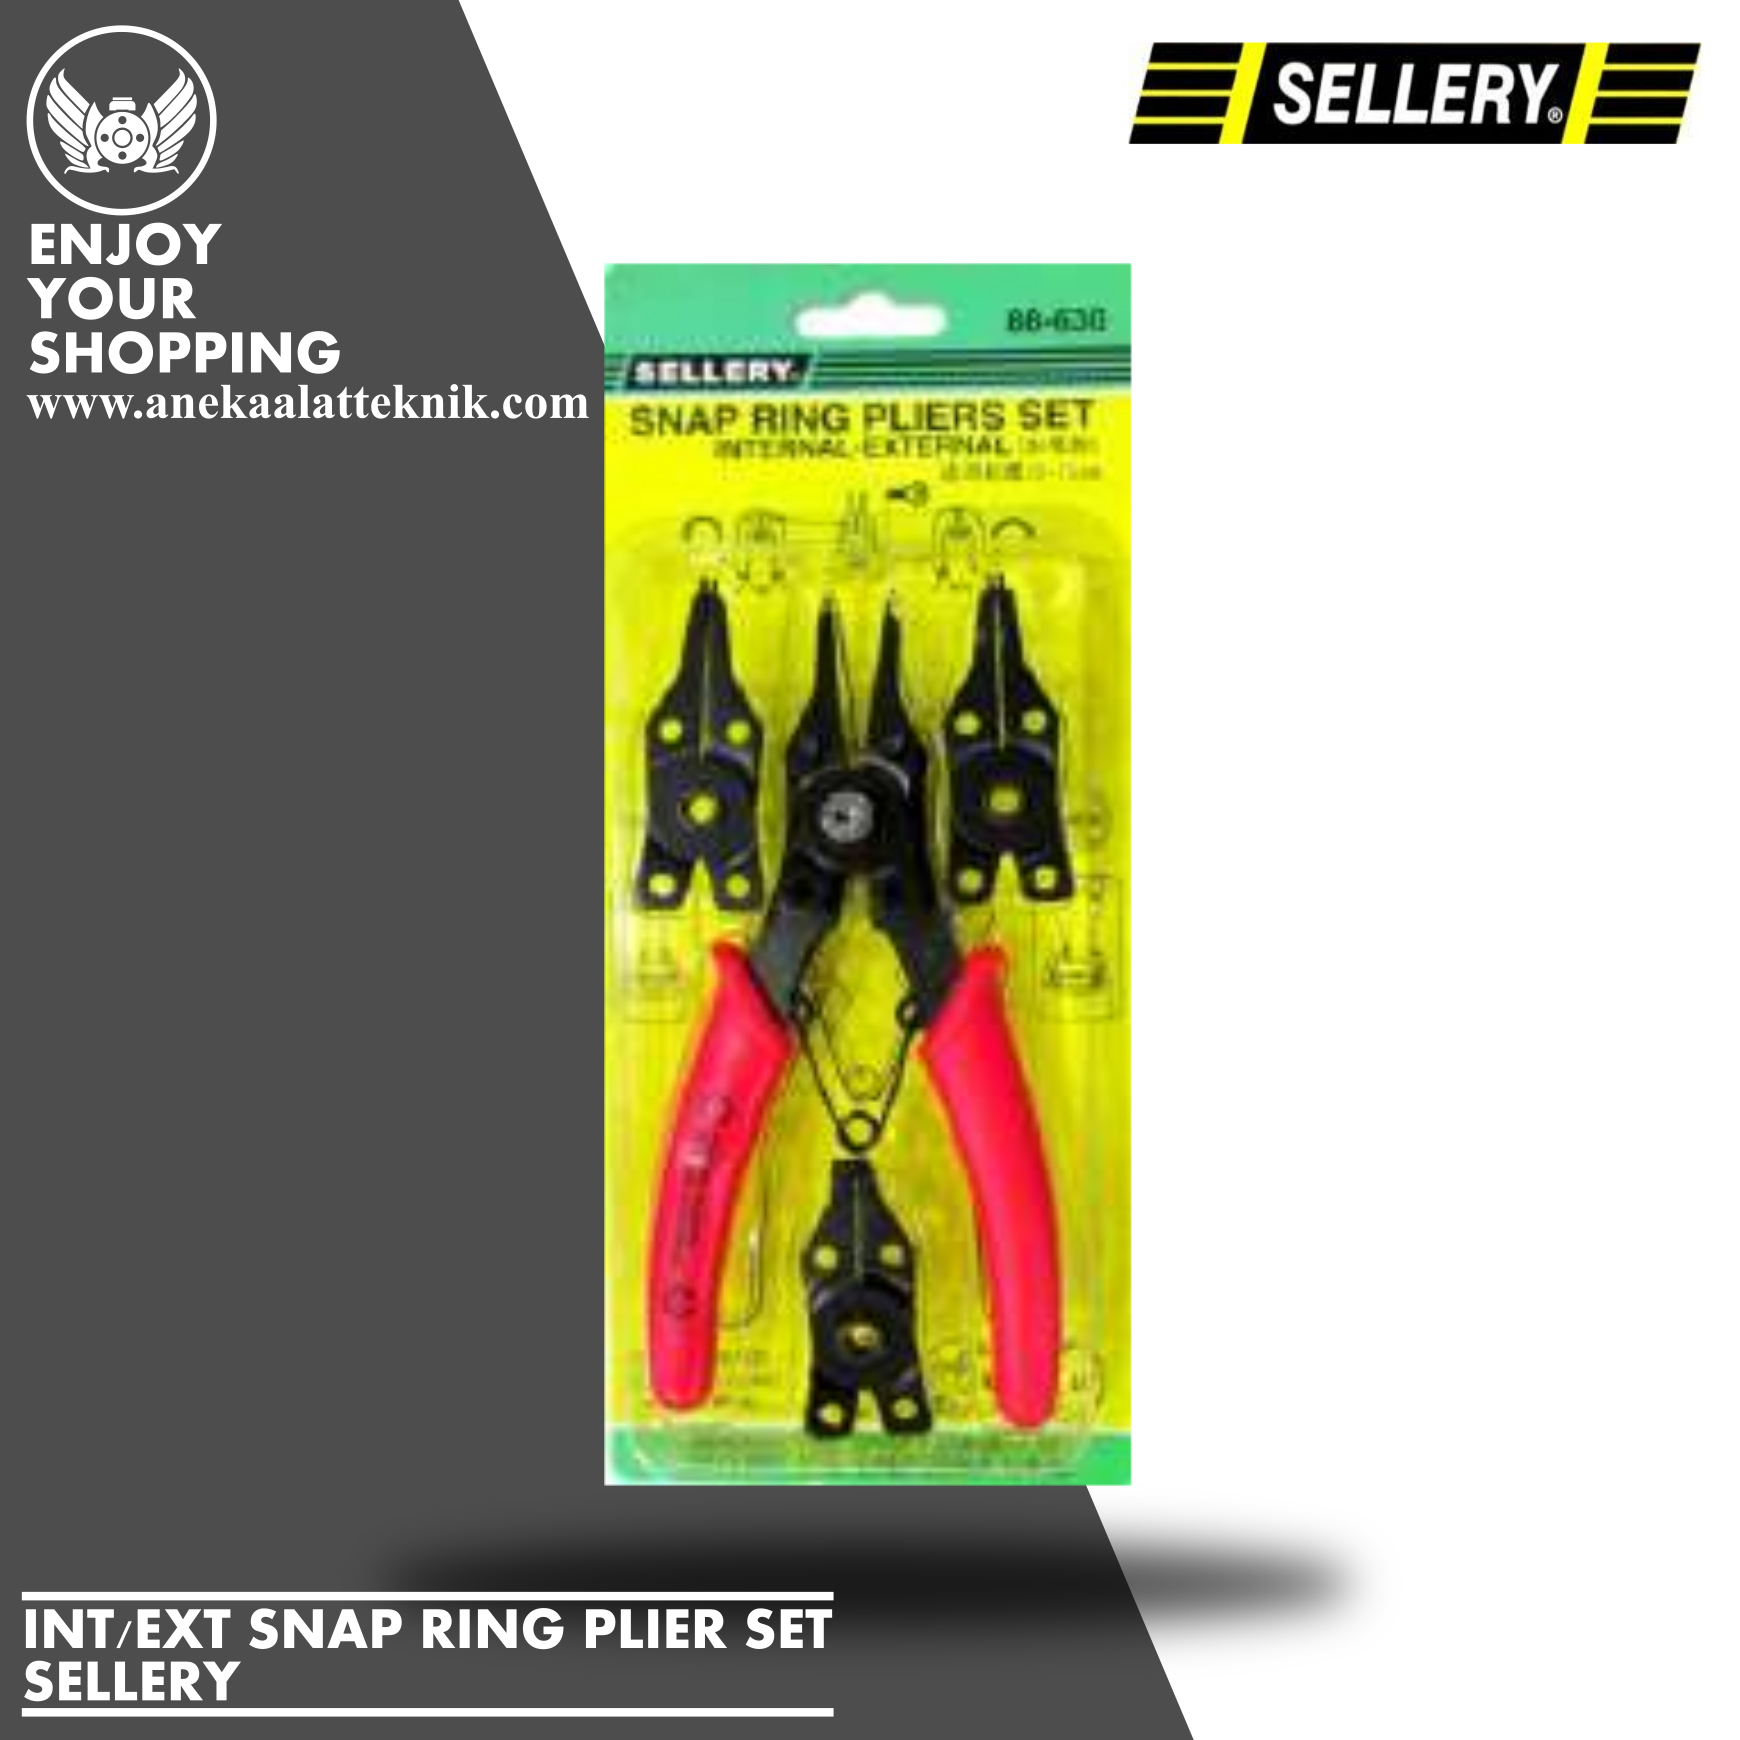 INTEXT SNAP RINGPLIER SET 88-630